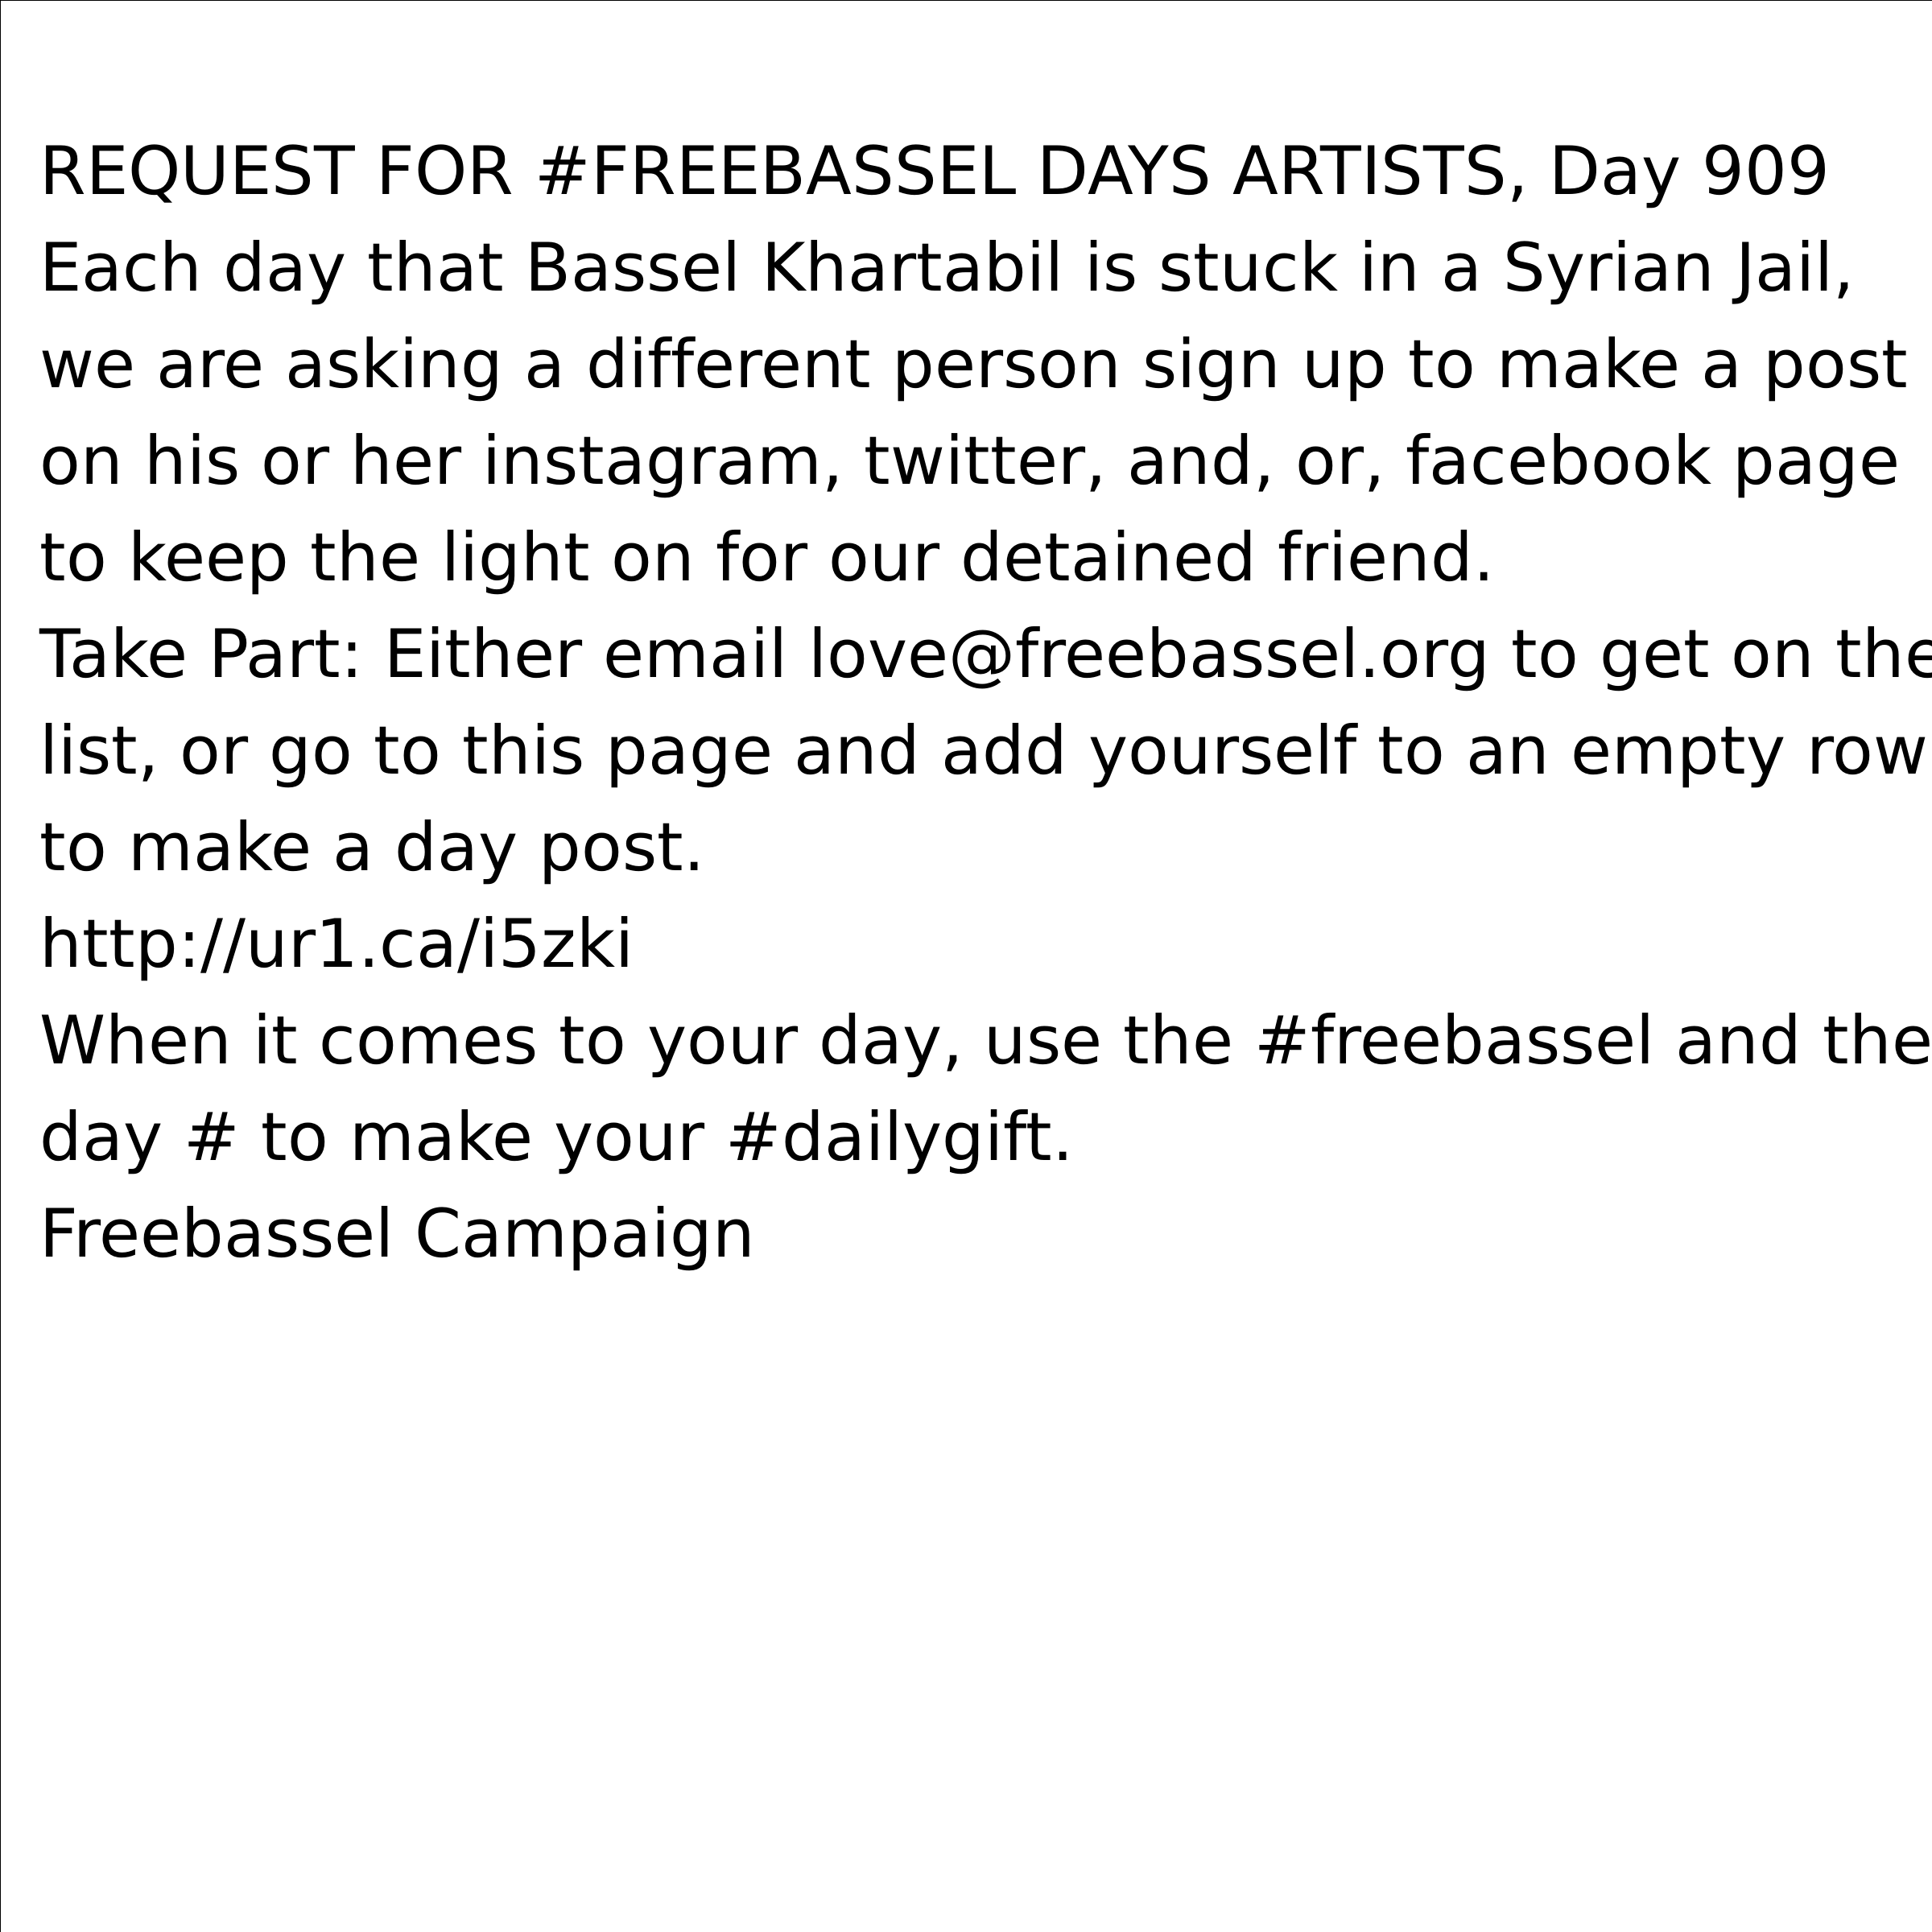 Request for Freebassel Days Artists by freebassel